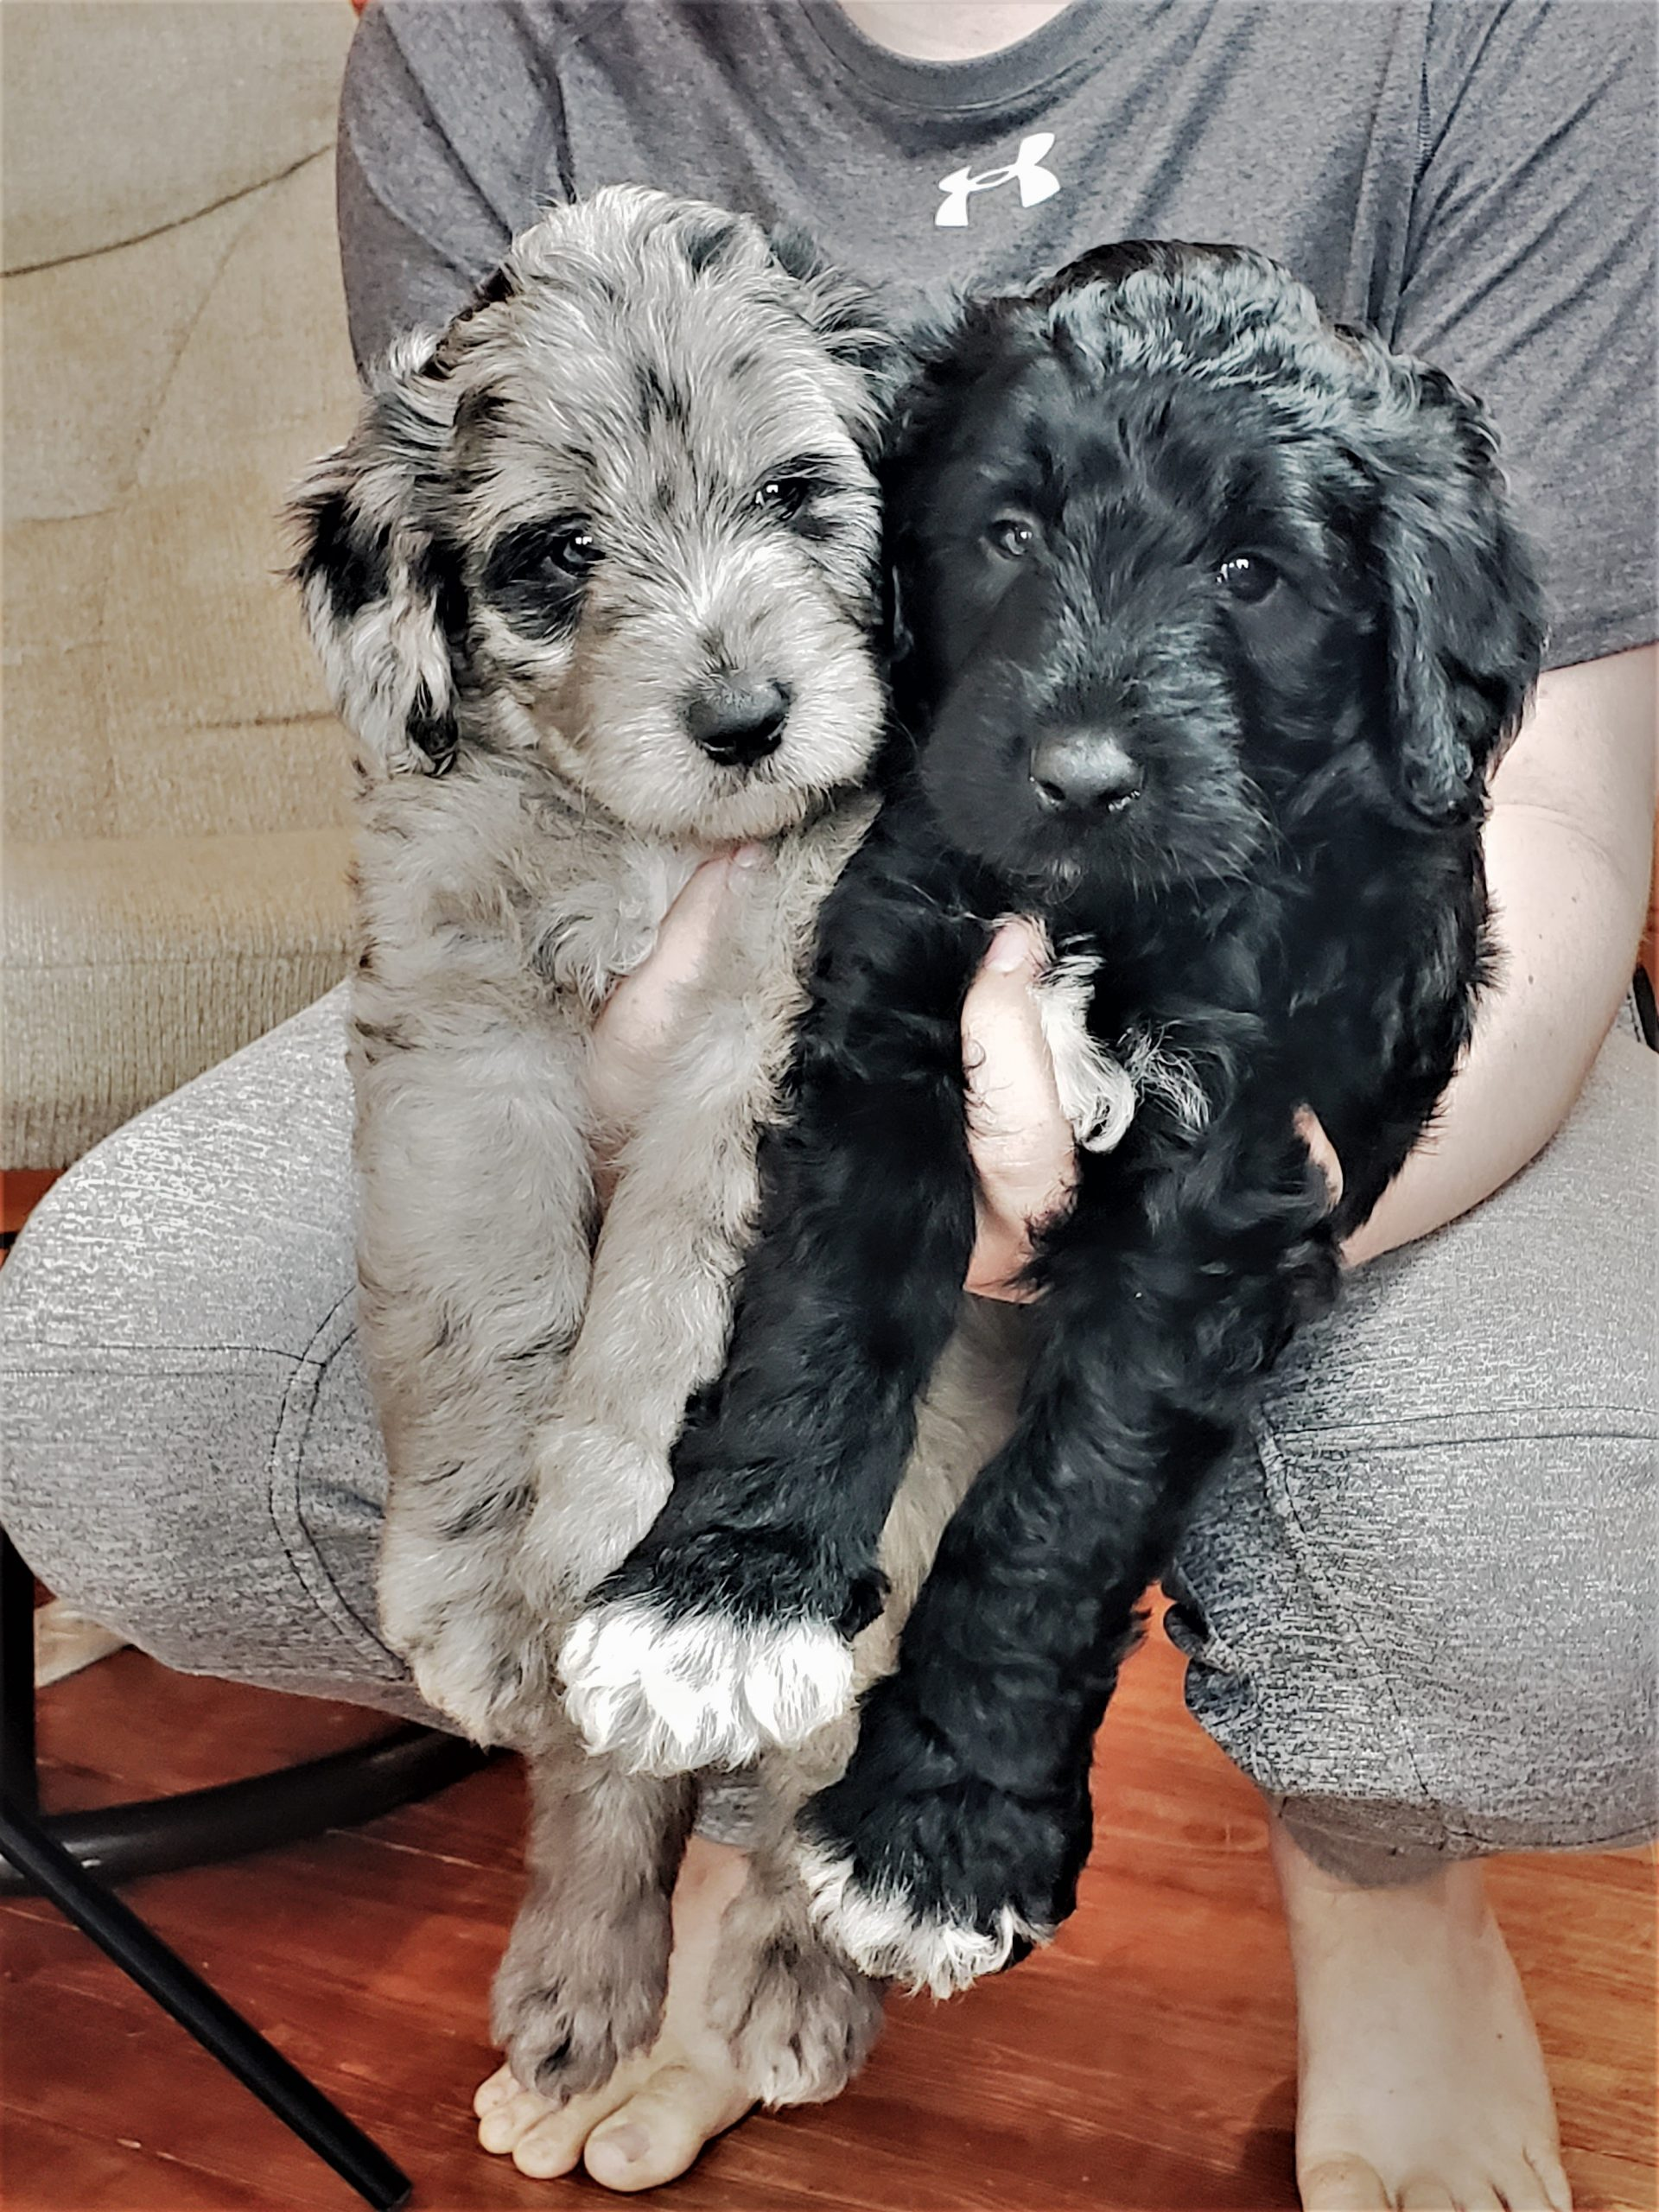 A blue merle and a black and white Bordoodle puppy.